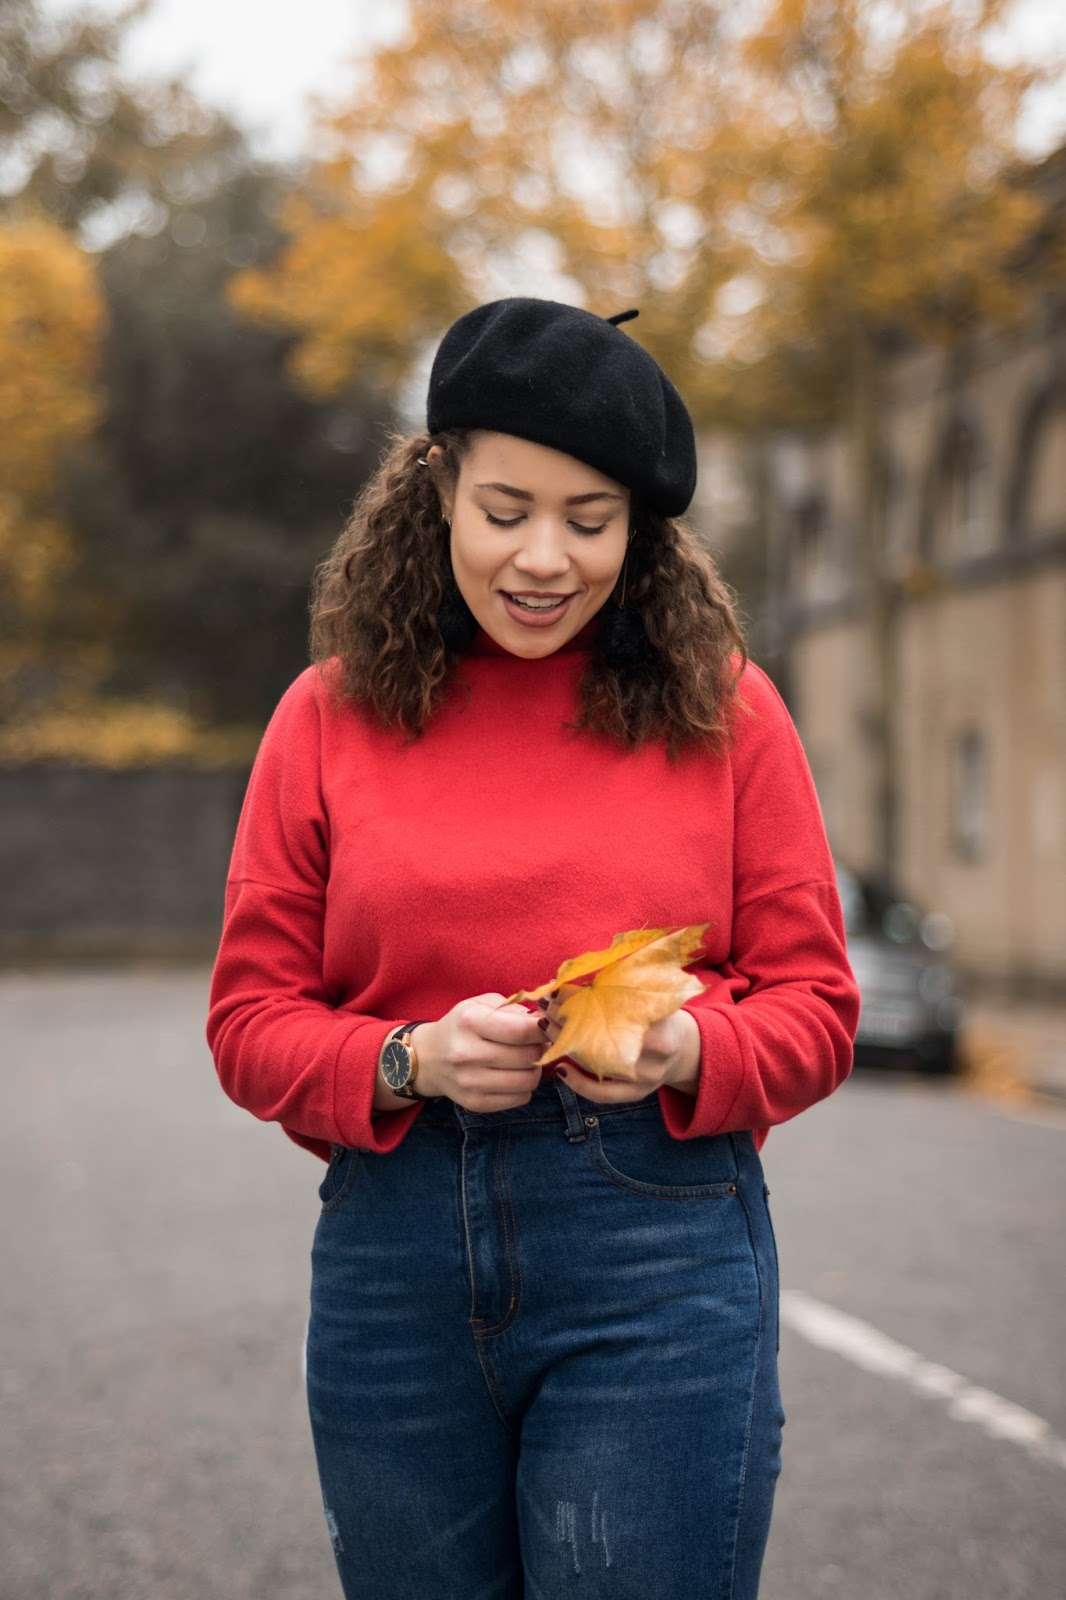 Eboni holding an autumnal leaf in a black beret and red jumper